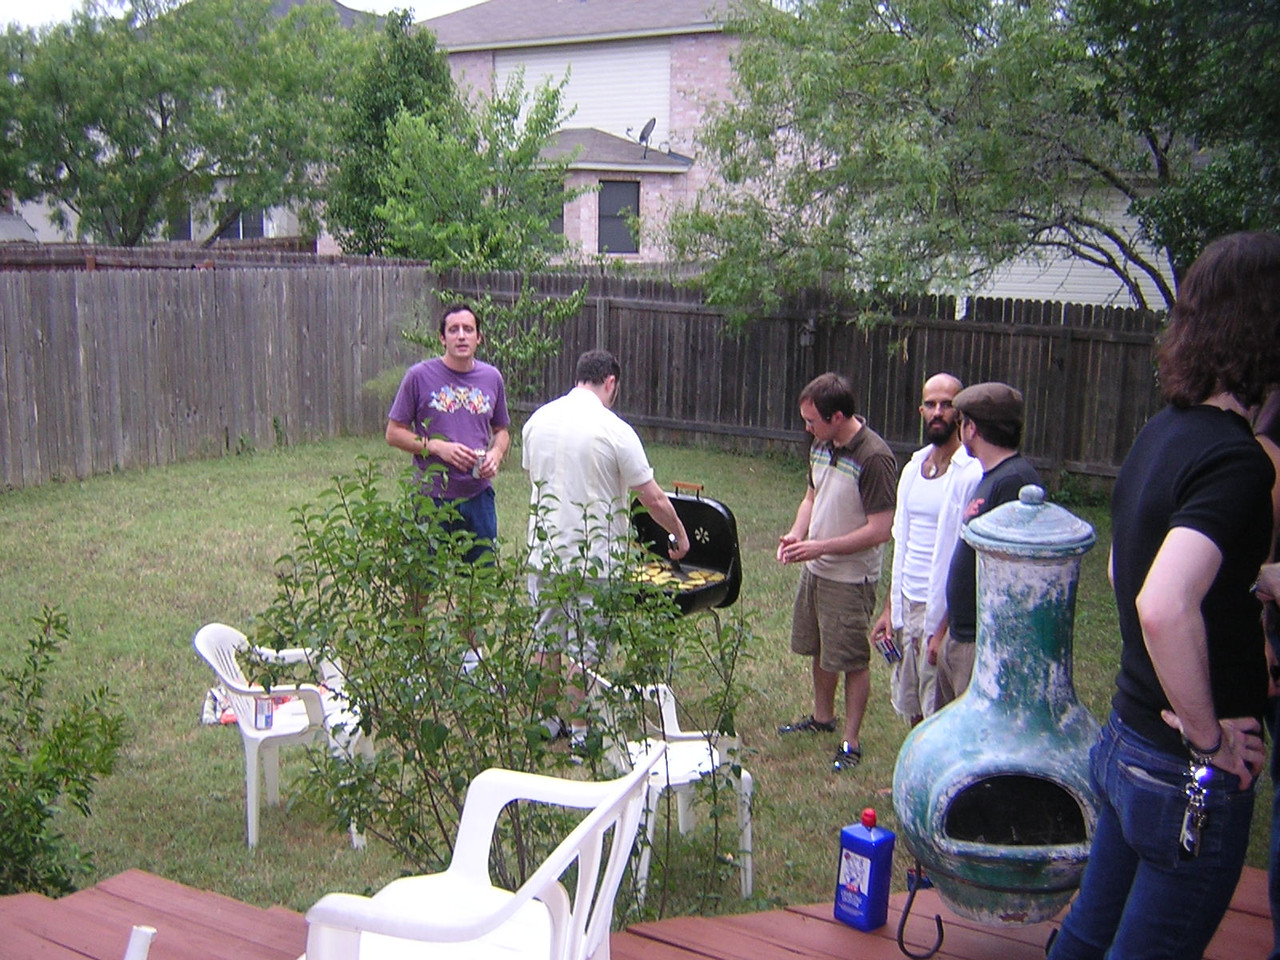 The boys grill and get all manly and stuff.nDSCN4901.JPG